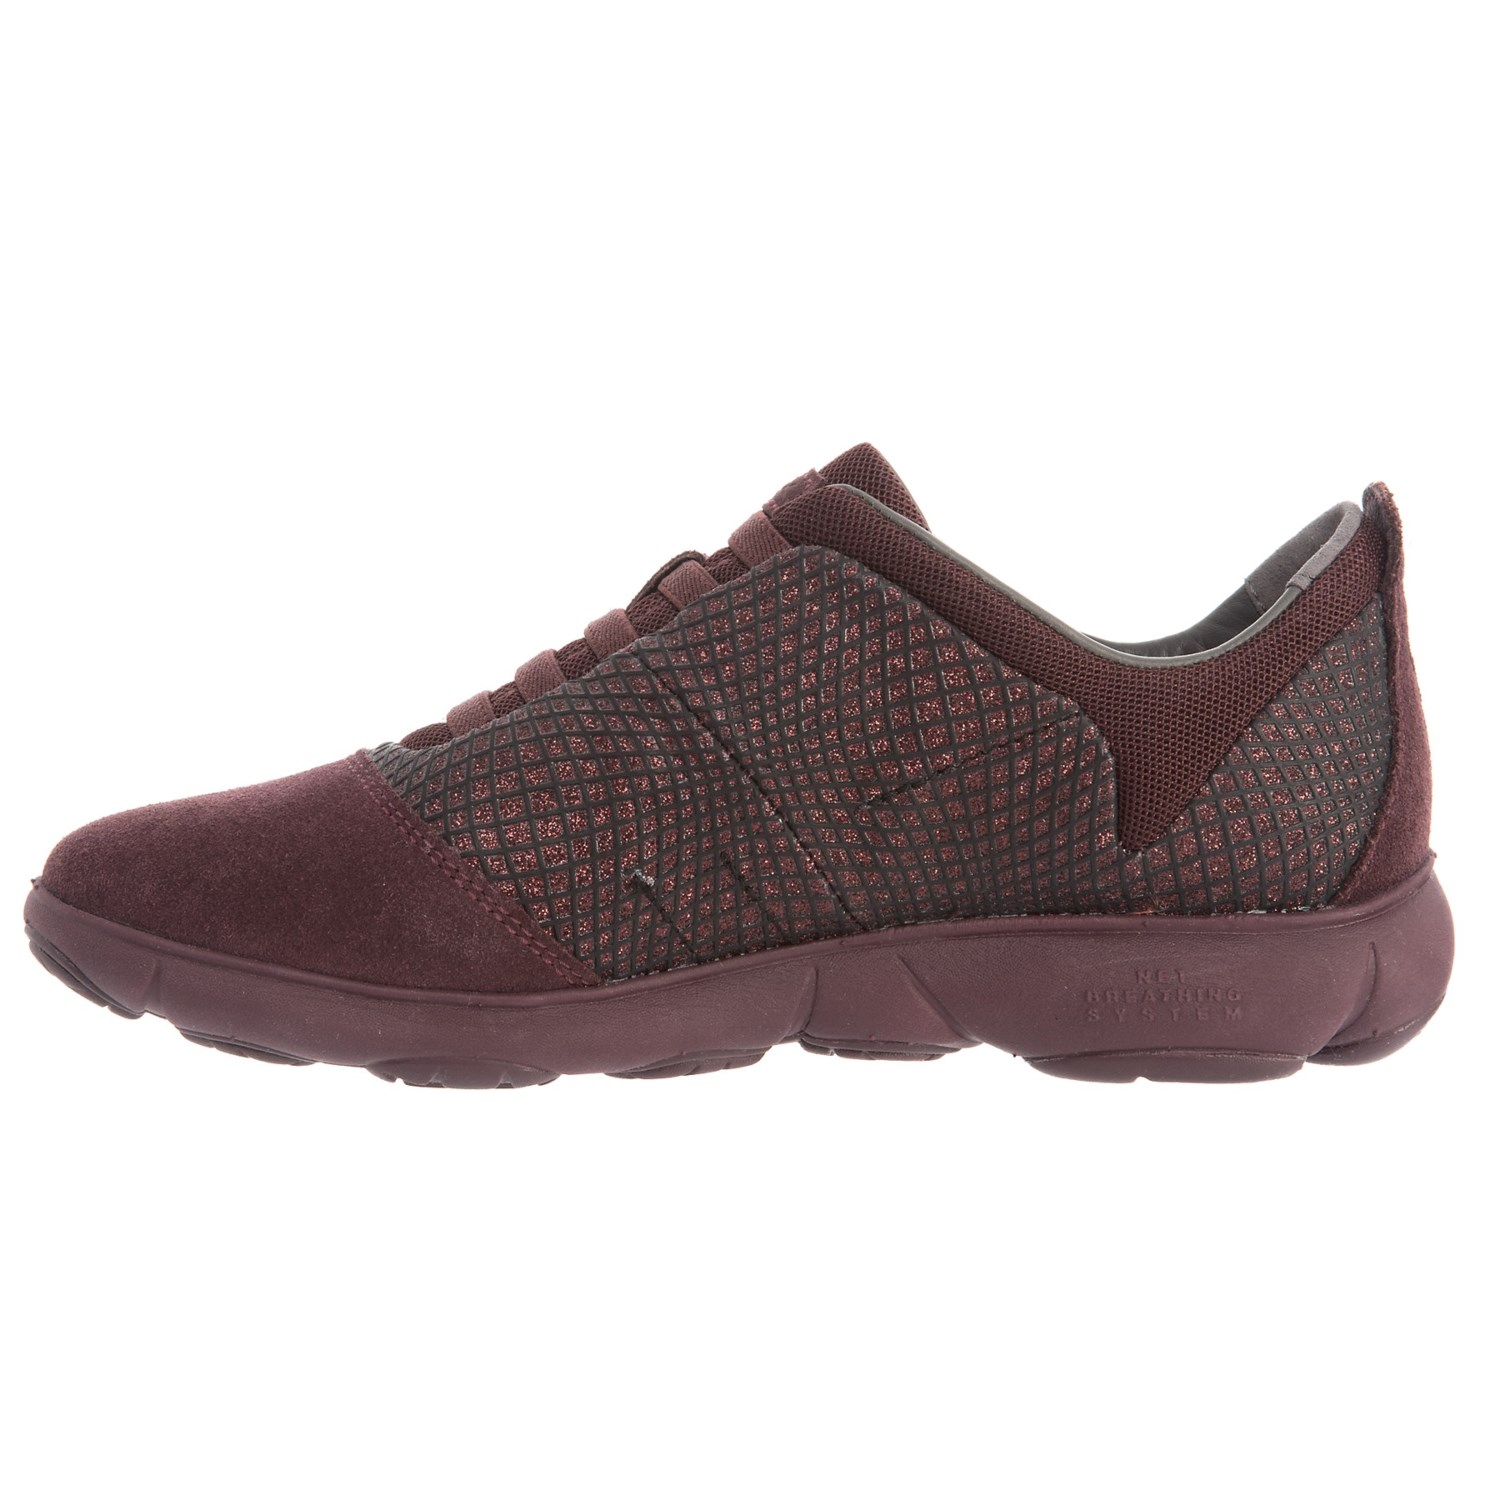 low priced 8e9a0 bd817 Geox Nebula Sneakers (For Women)